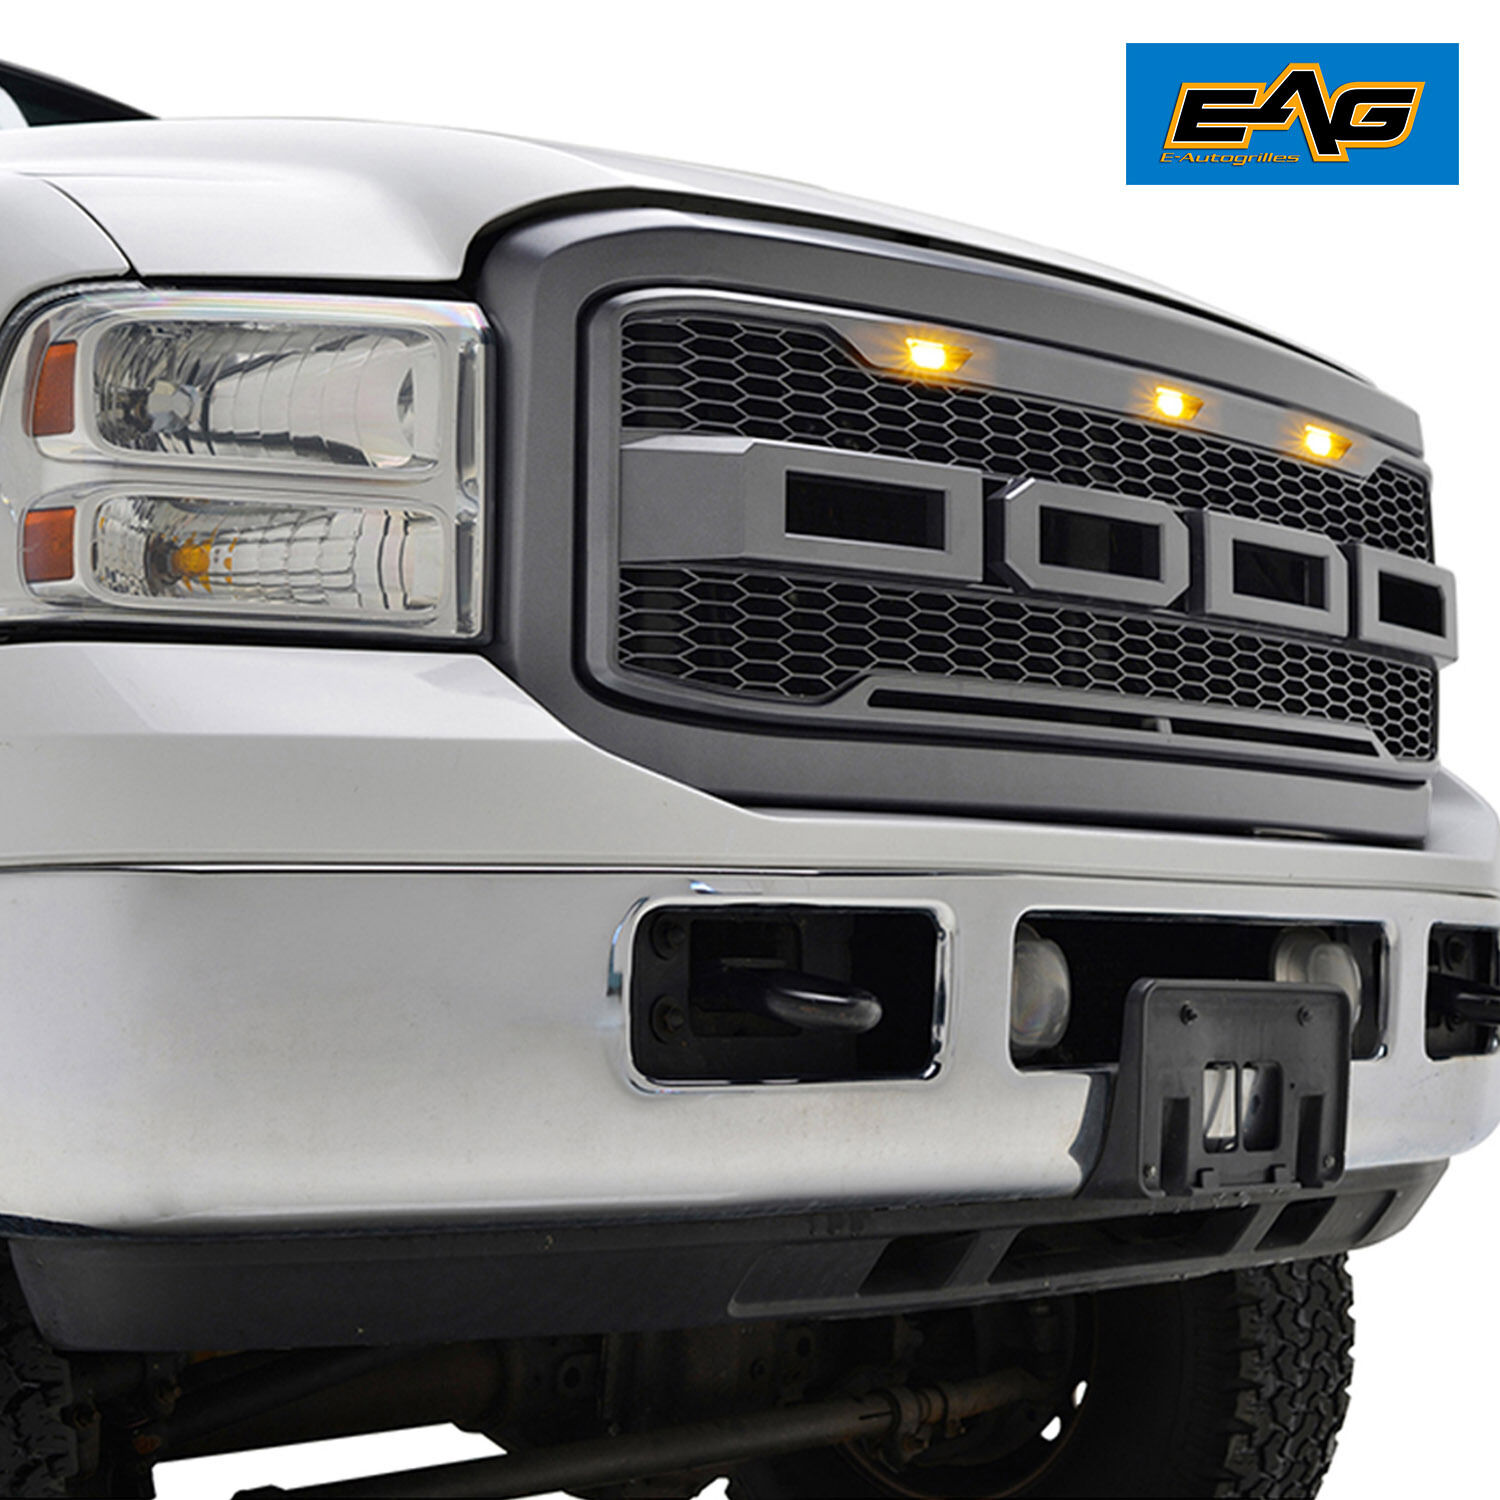 Eag vicious conversion replacement grille for 2005 2007 ford f250 f350 fits